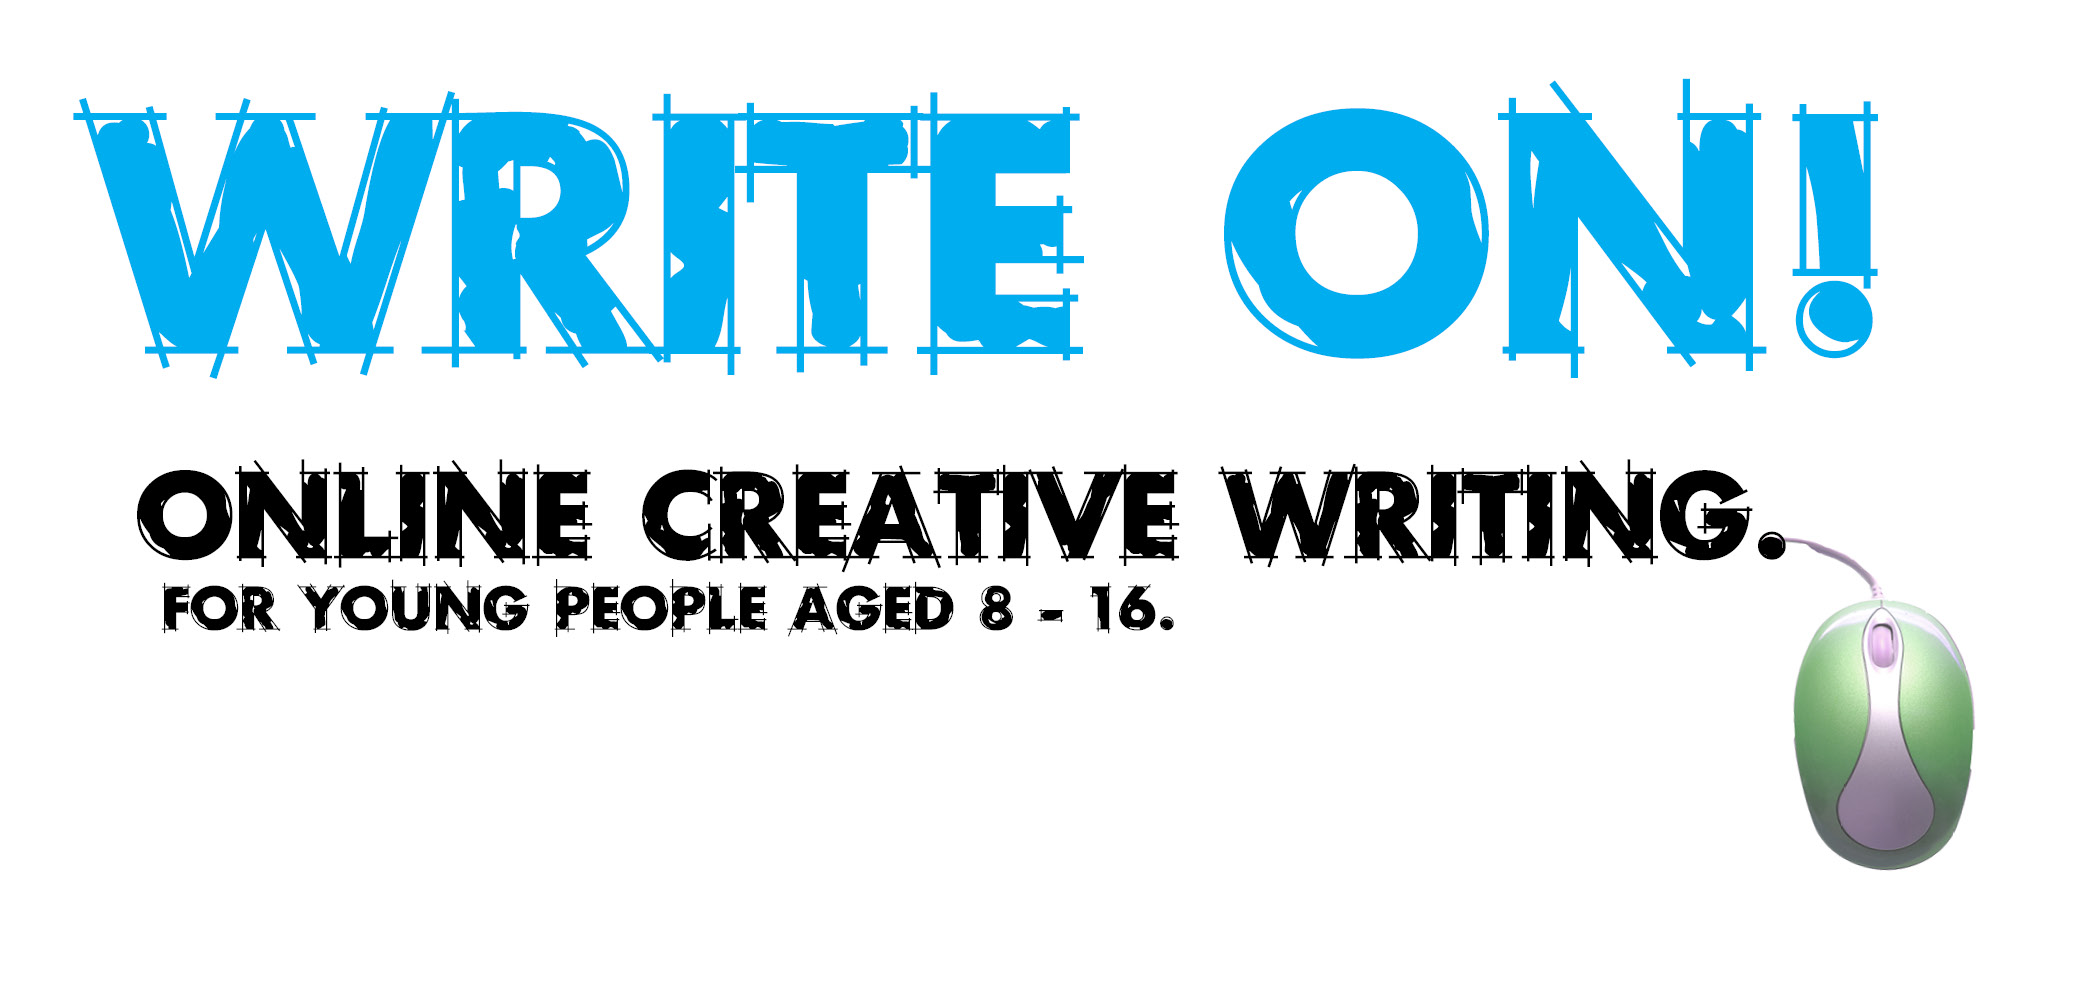 Creative writing service websites uk